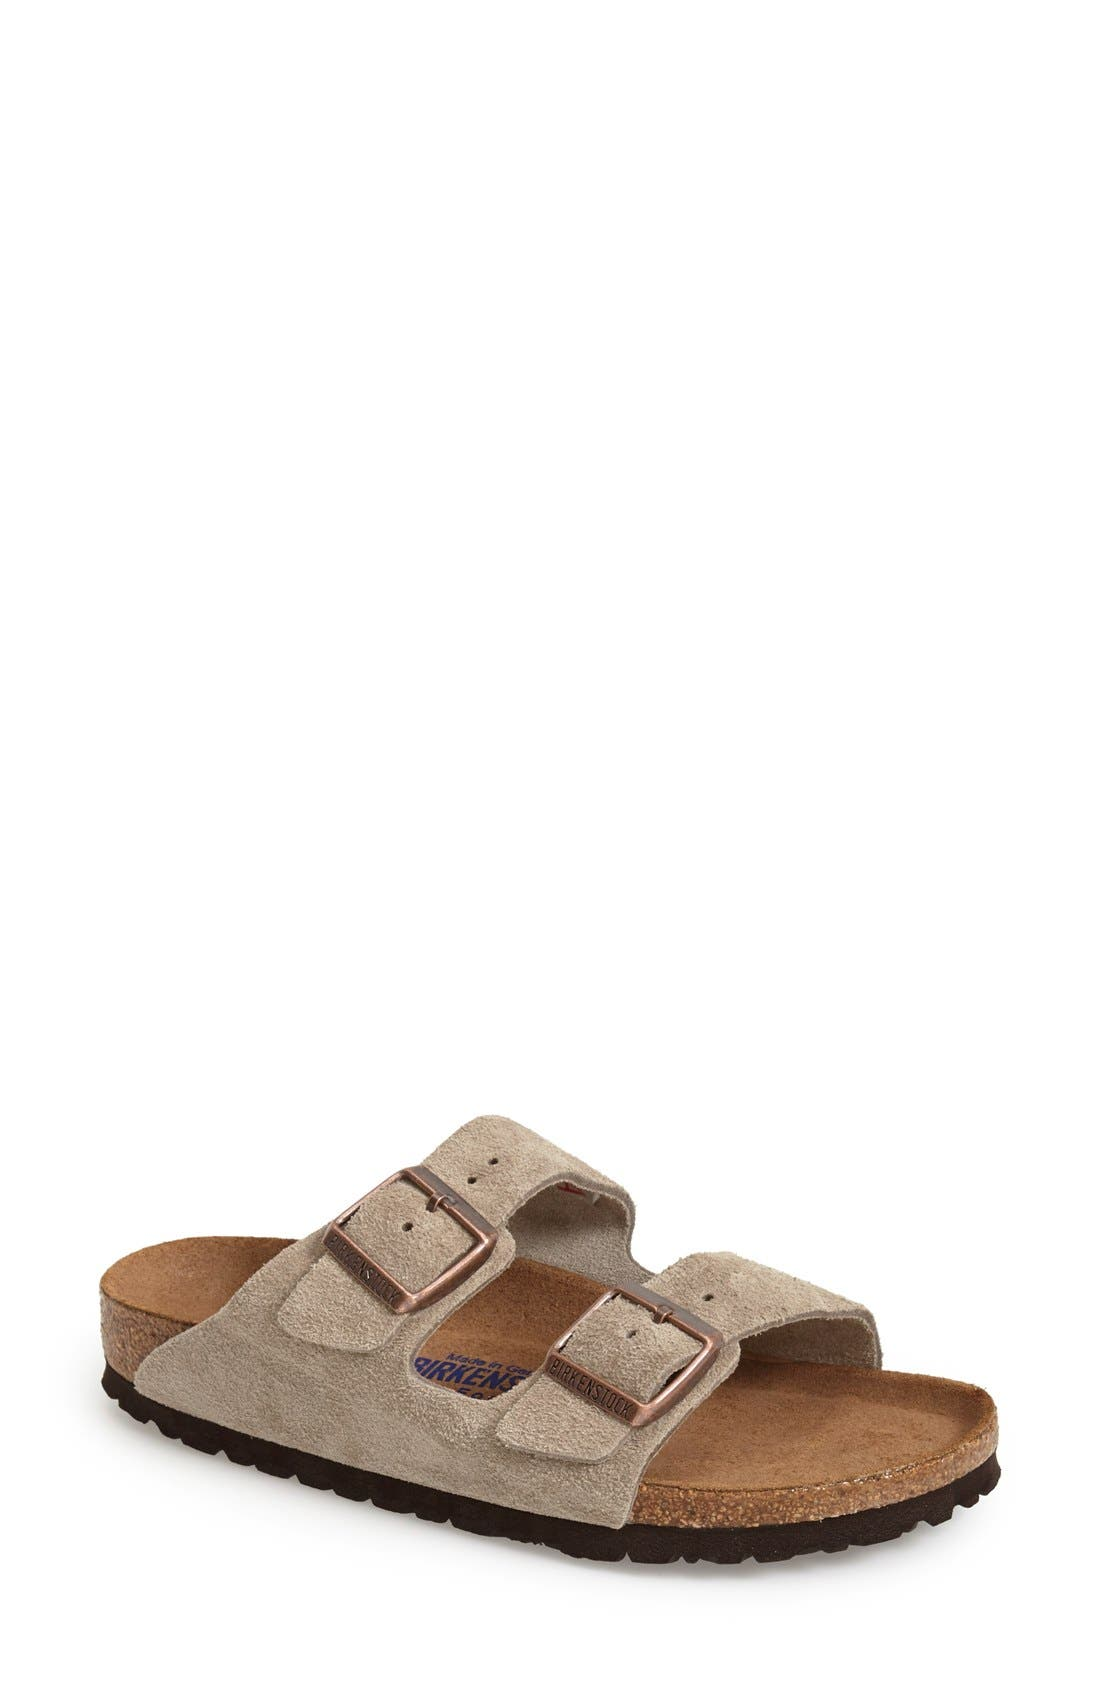 'Arizona' Soft Footbed Suede Sandal,                             Main thumbnail 1, color,                             Taupe Suede